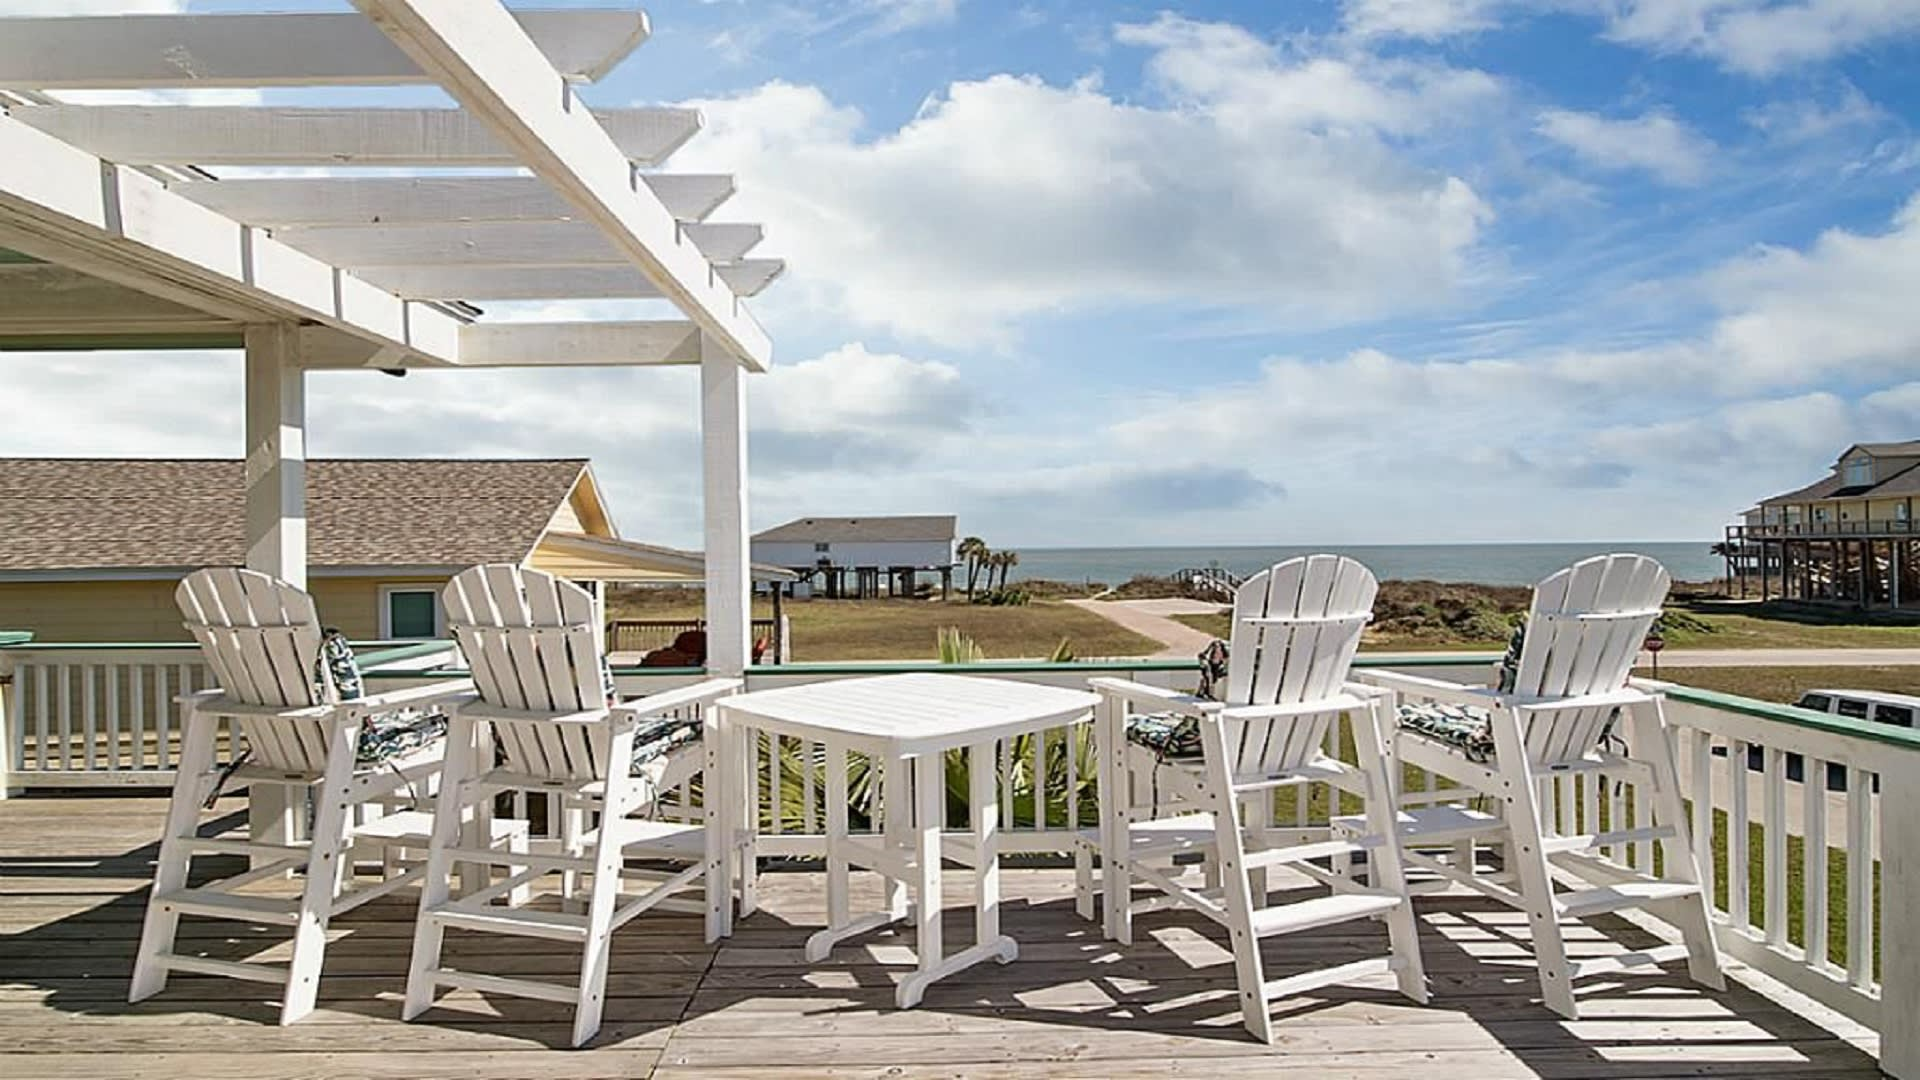 Freeport Vacation Rental Home   3BR   2BA   1,377 Sq Ft   Stairs Required